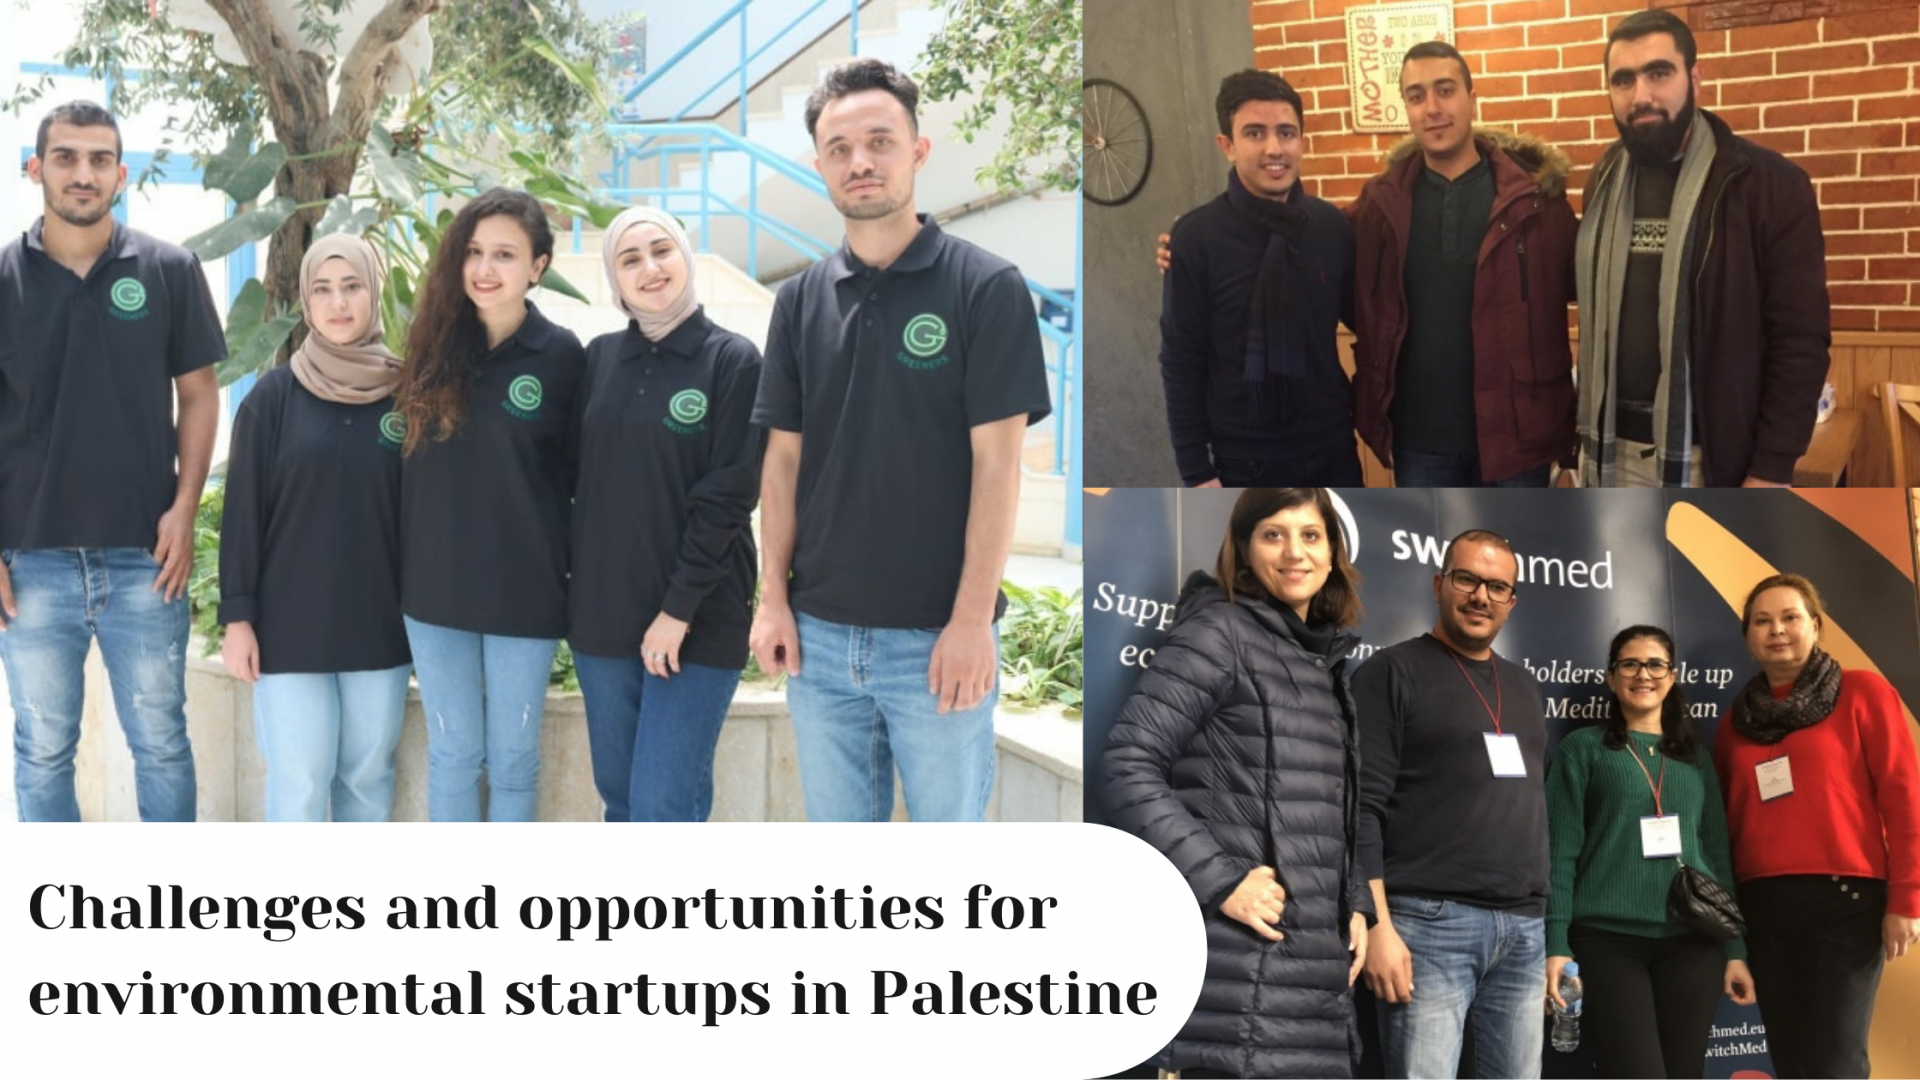 Challenges and opportunities for environmental startups in Palestine